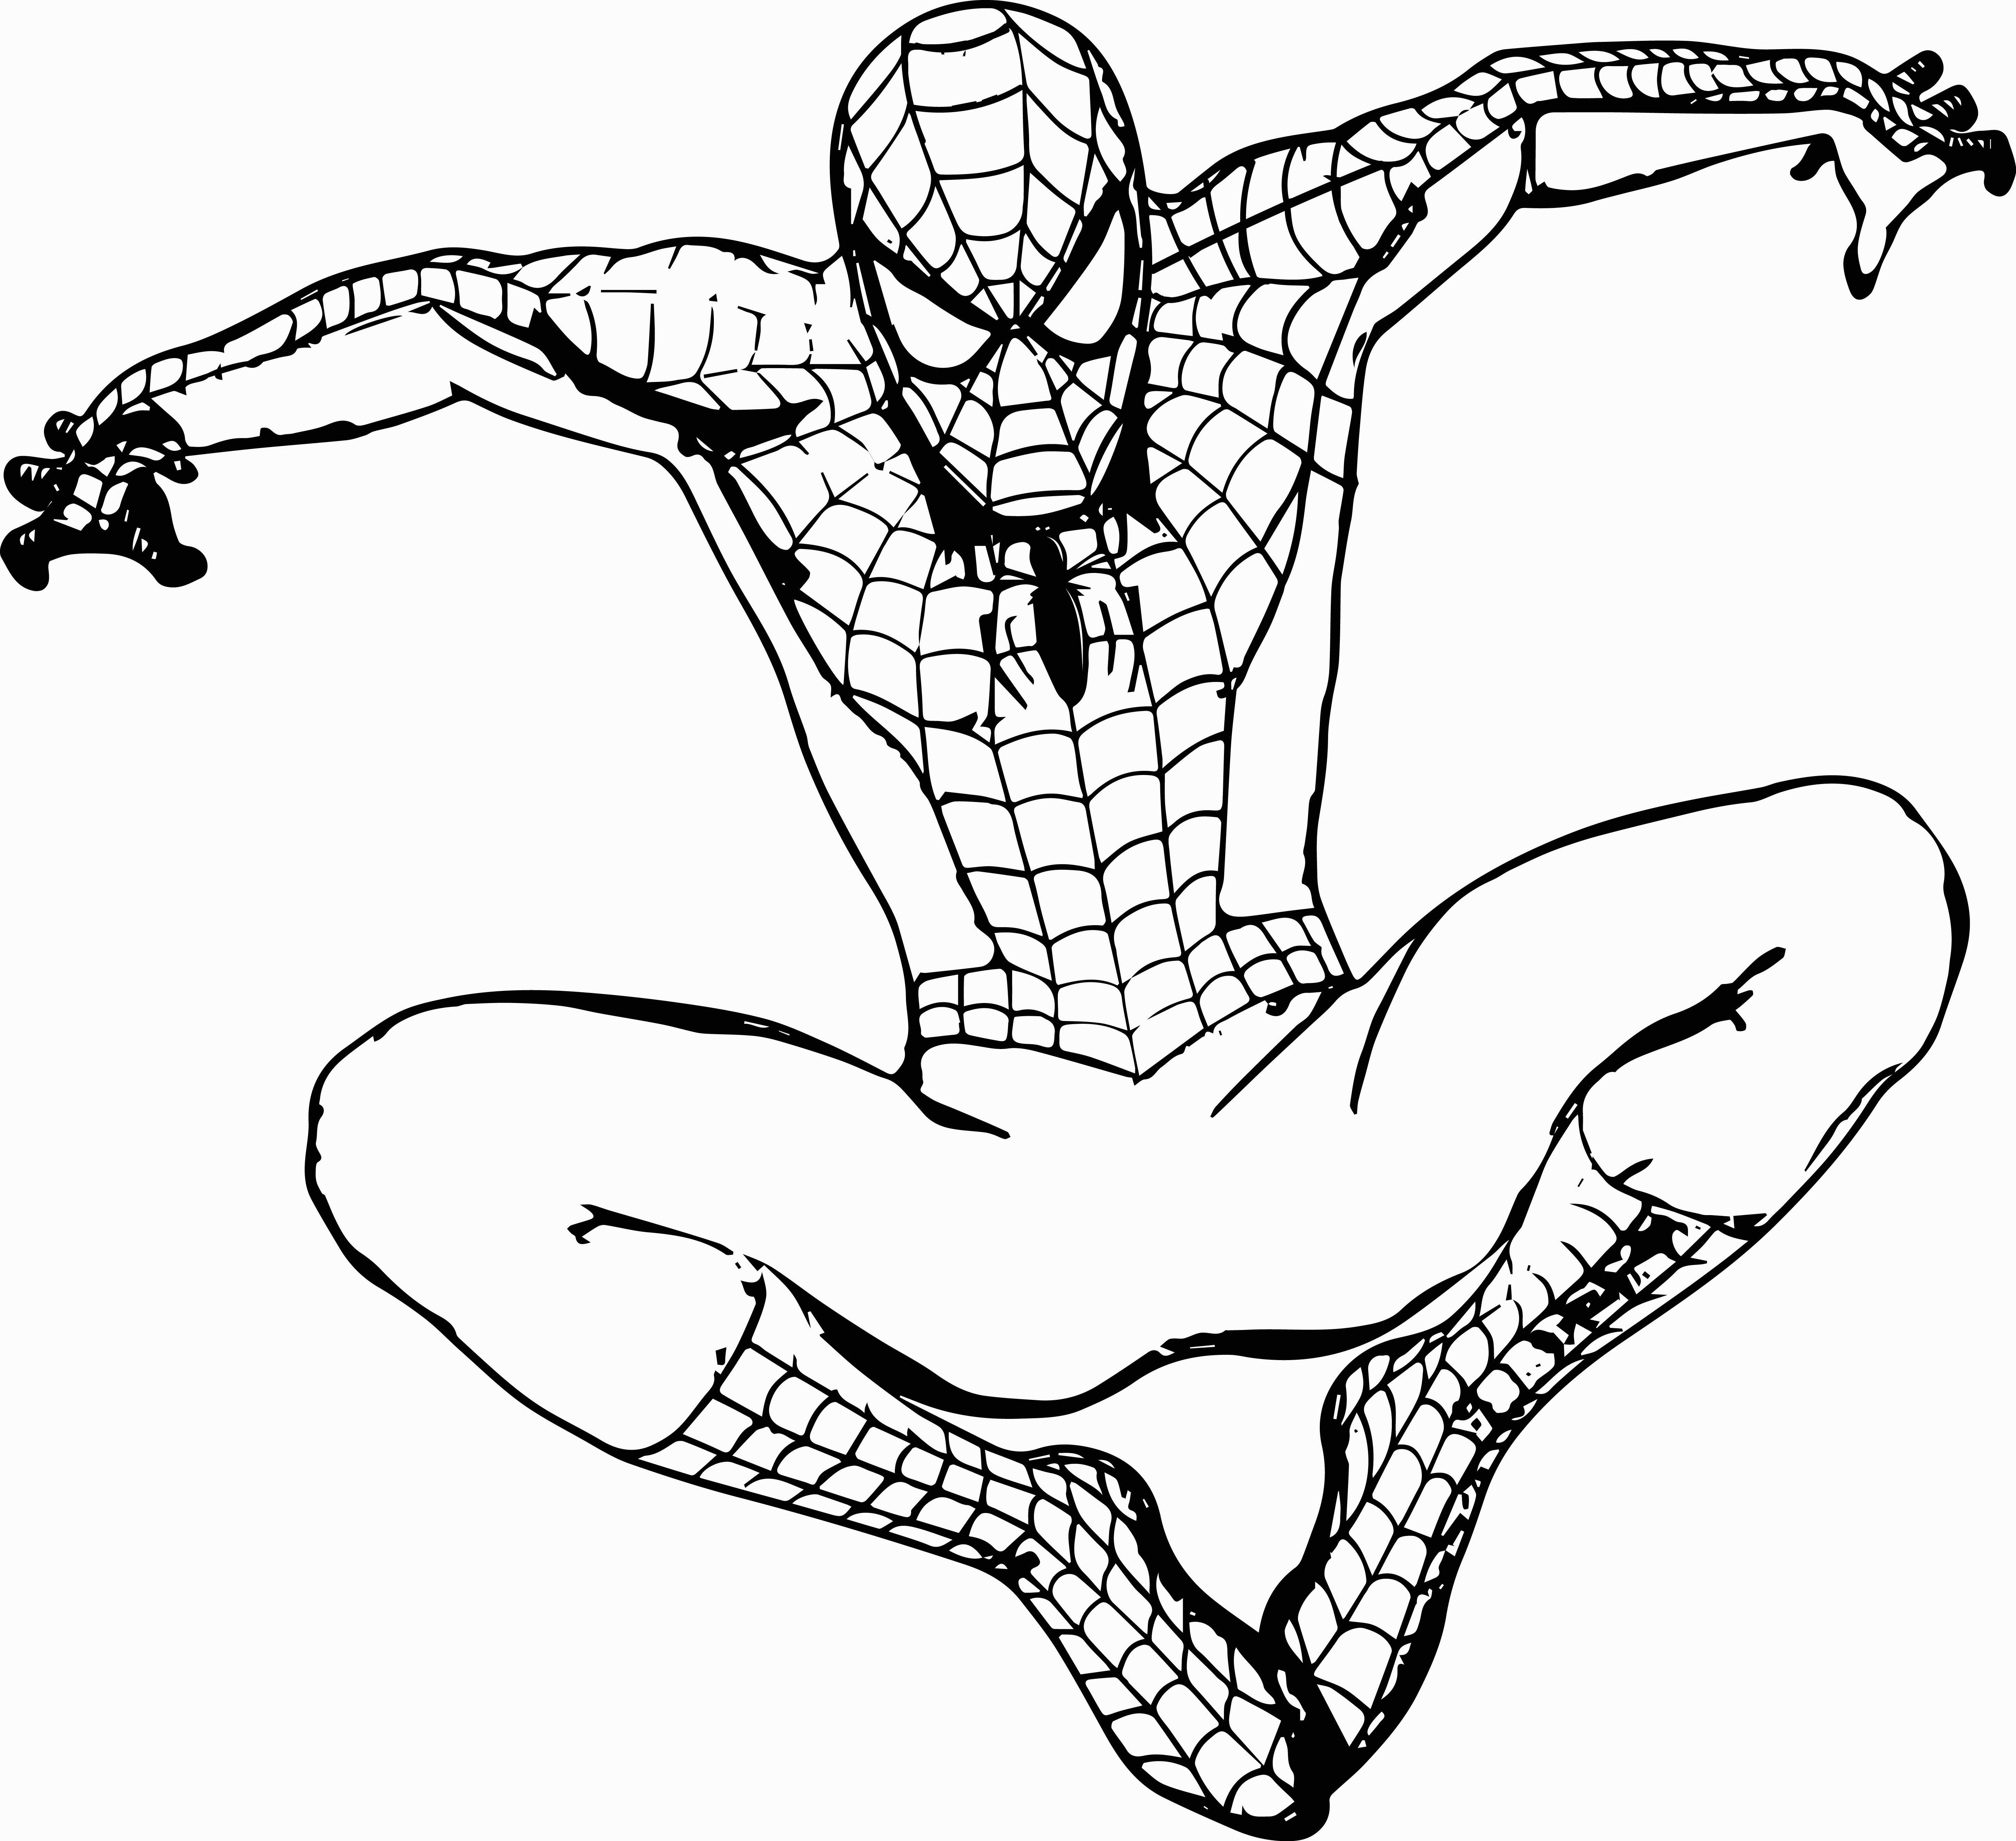 Free Printable Spiderman Images To Color Of Your Favorite | Coloring - Free Printable Spiderman Pictures